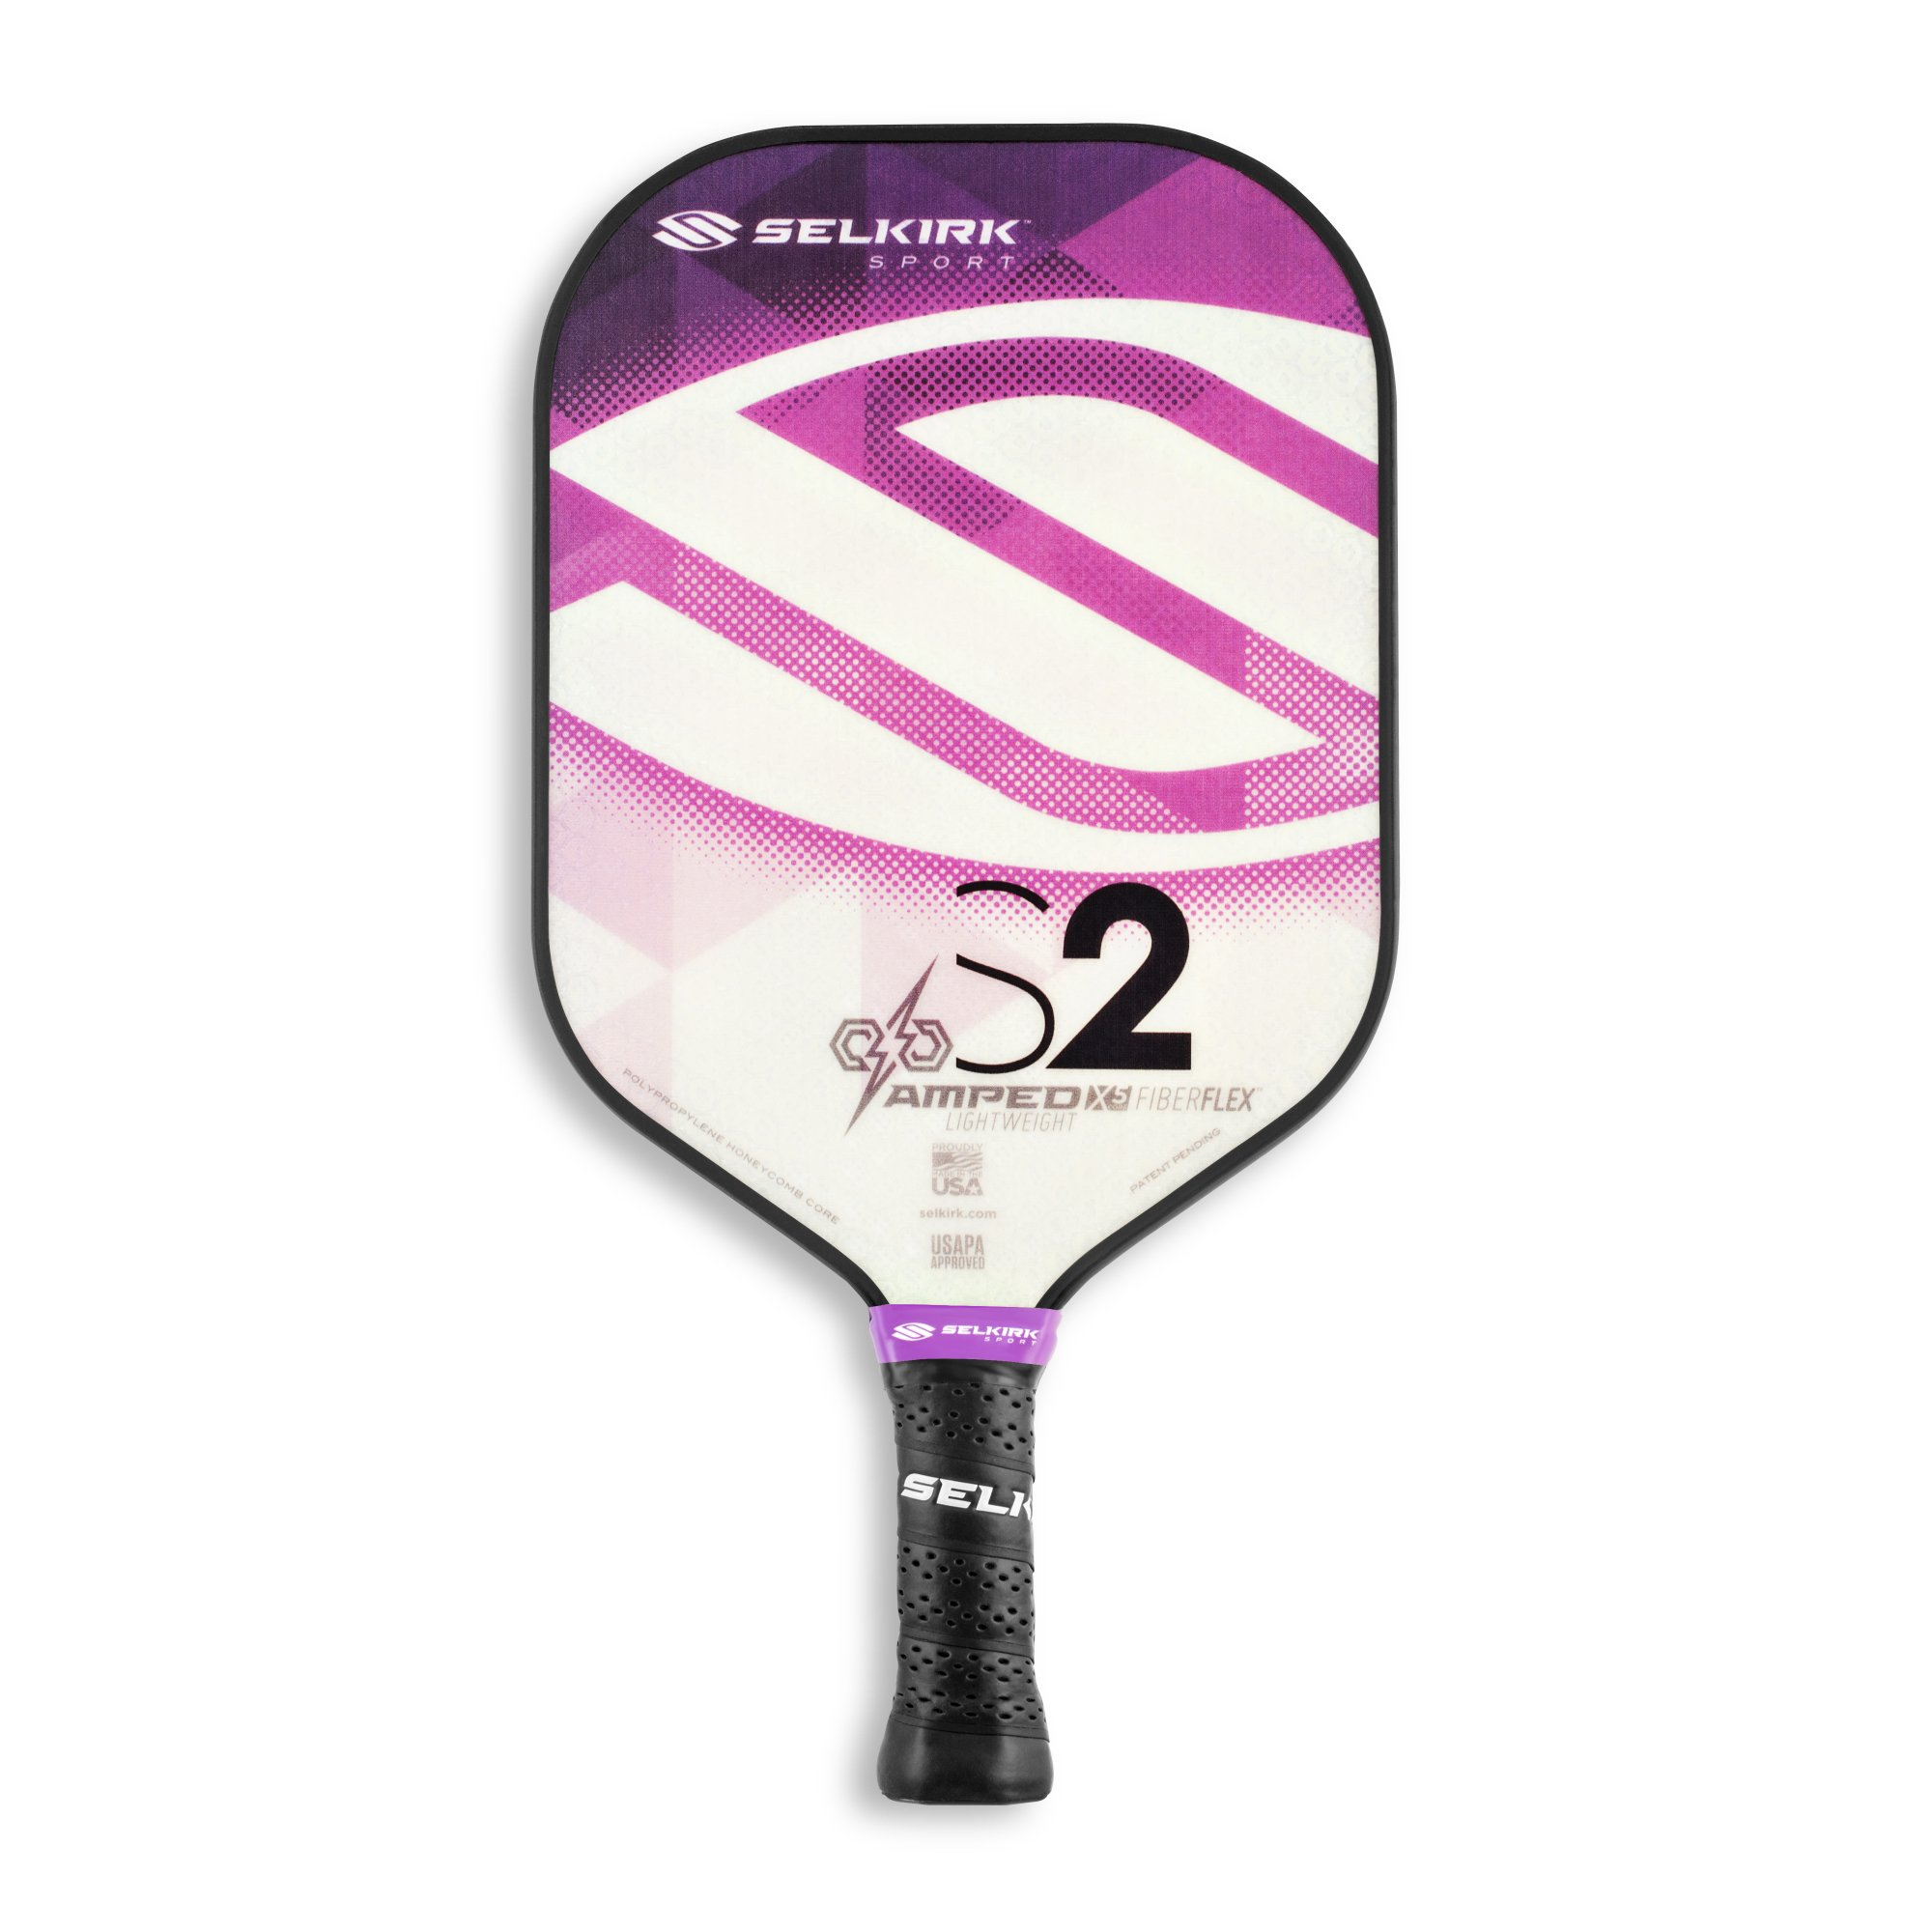 Selkirk Amped Pickleball Paddle - USAPA Approved - X5 Polypropylene Core - FiberFlex Fiberglass Face - 5 Sizes: Epic, S2, Omni, Maxima, and INVIKTA (S2 Lightweight - Amethyst Purple) by Selkirk Sport